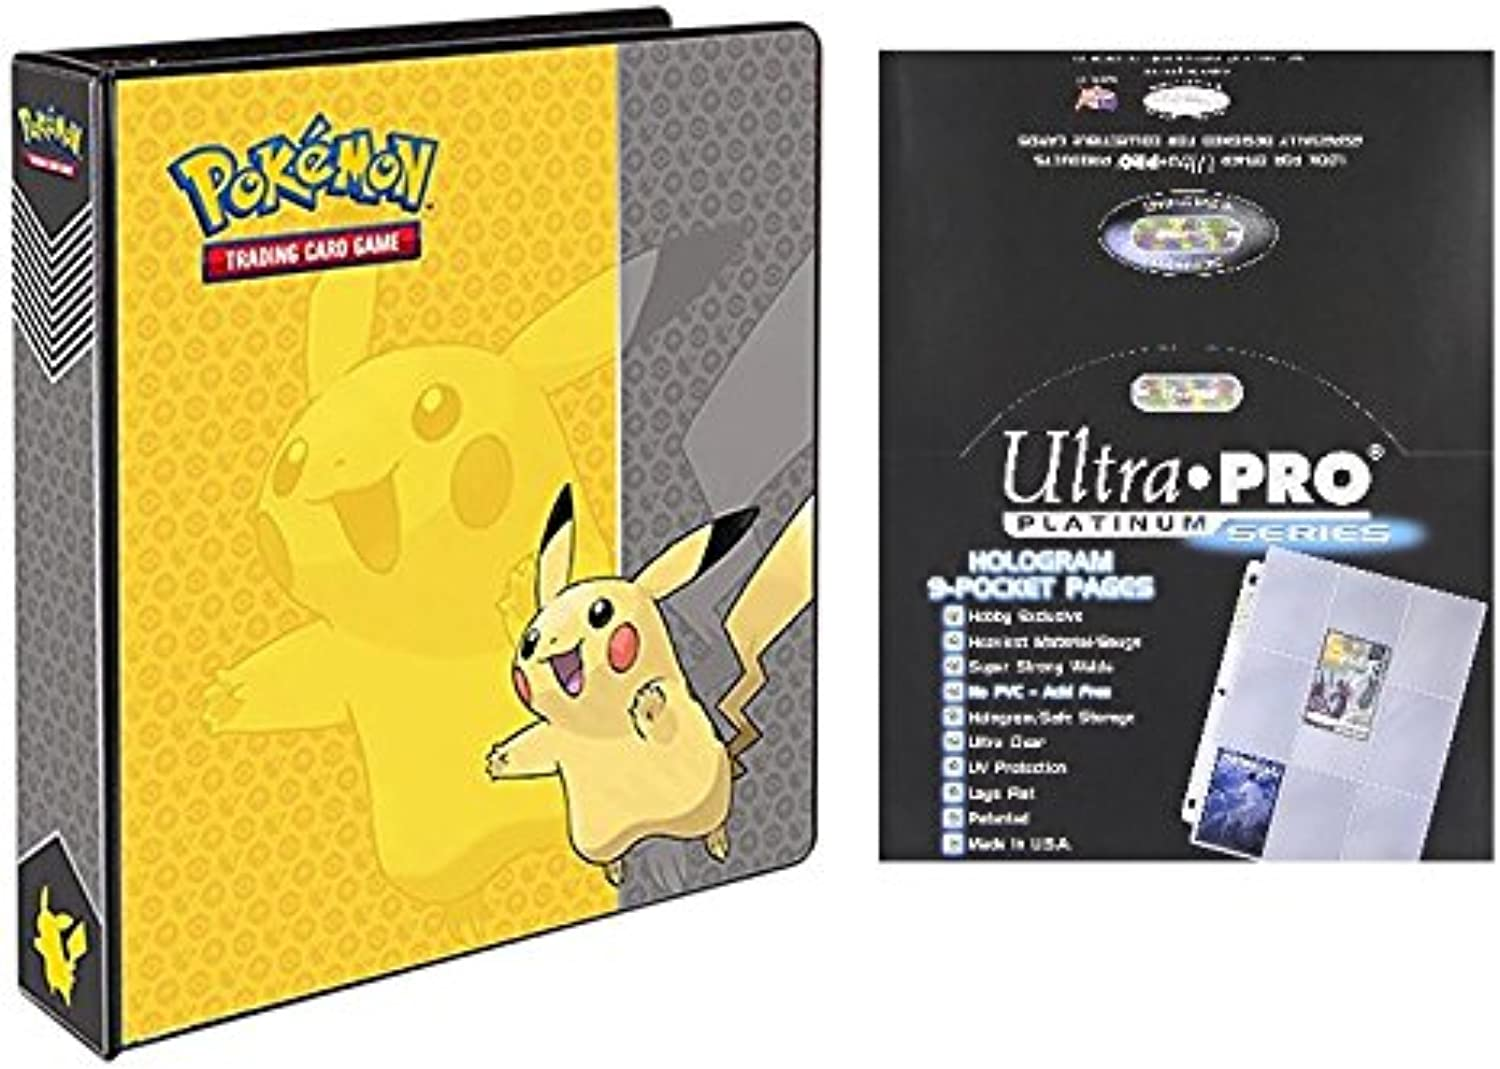 los clientes primero Pokemon Pikachu 2 3-Ring Binder Coched Coched Coched Album with 100 Ultra Pro Platinum Series 9-Pocket Sheets by Ultra Pro  barato